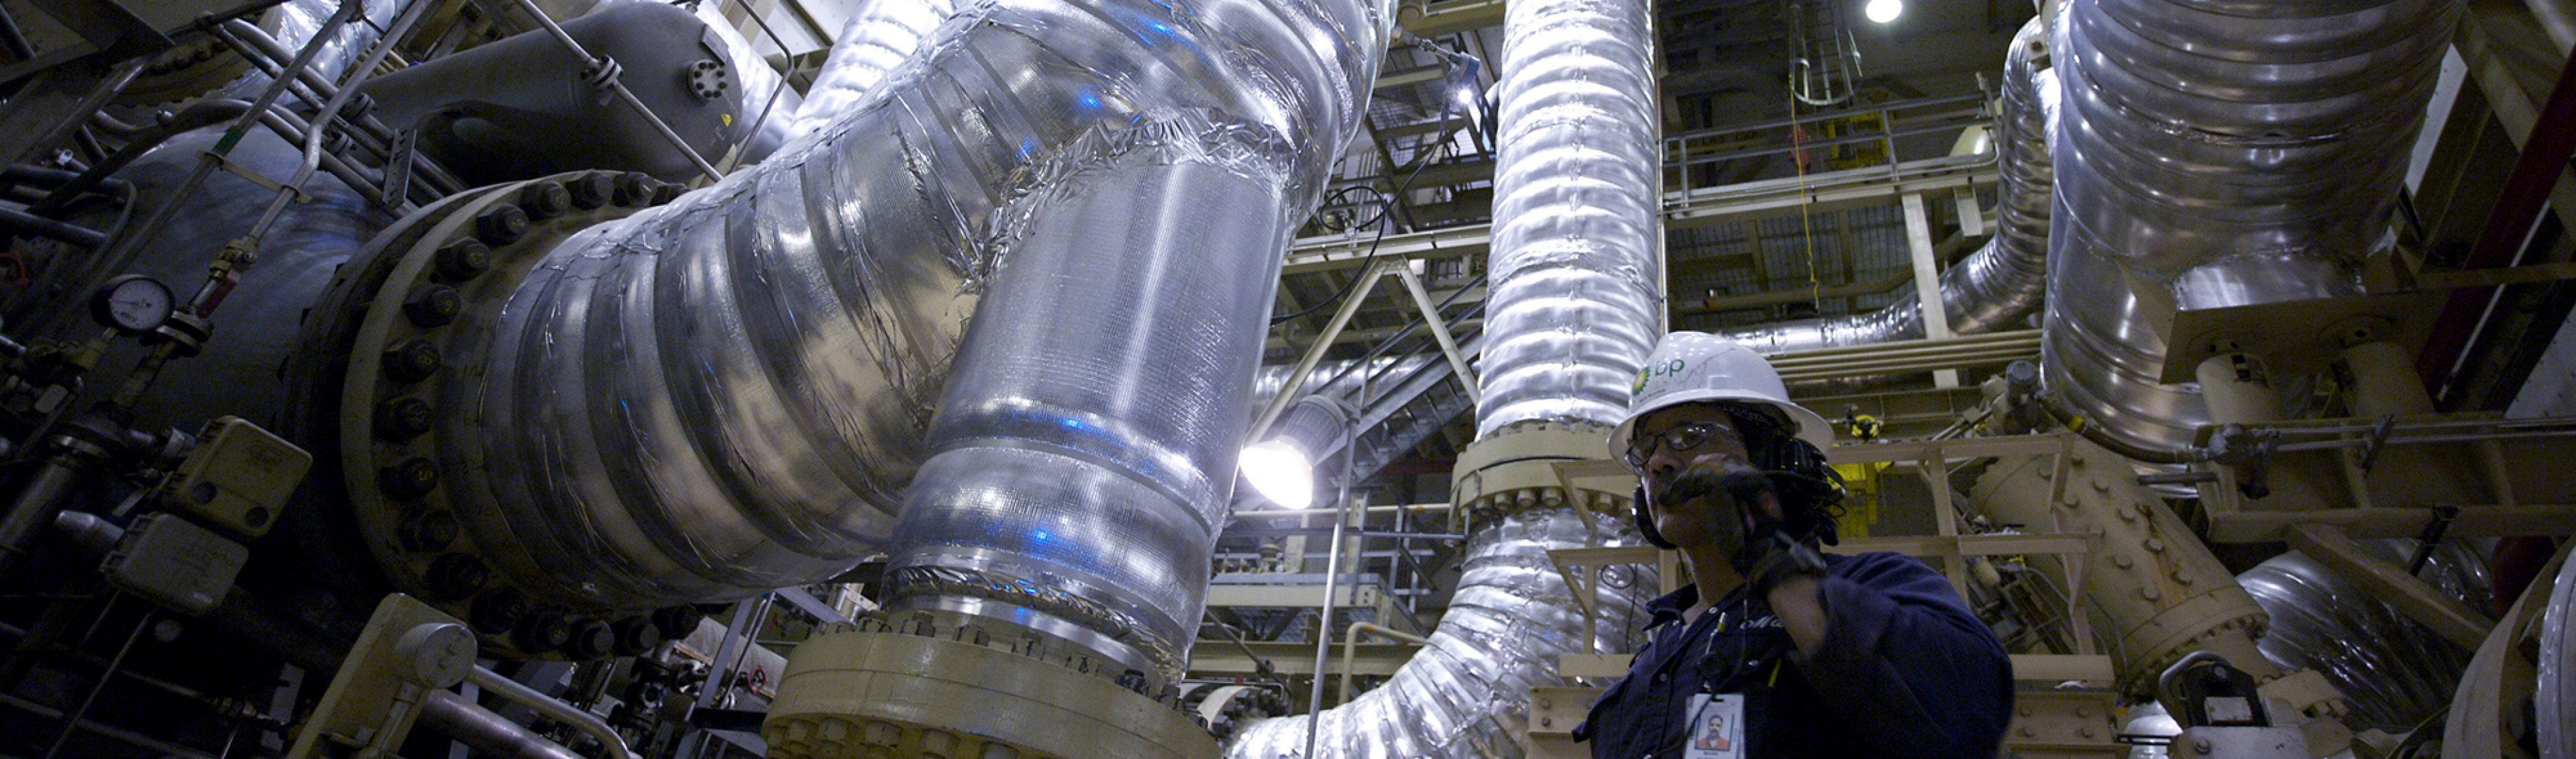 An operator at the Central Gas Facility Booster Compressor on the North Slope of Alaska, USA.